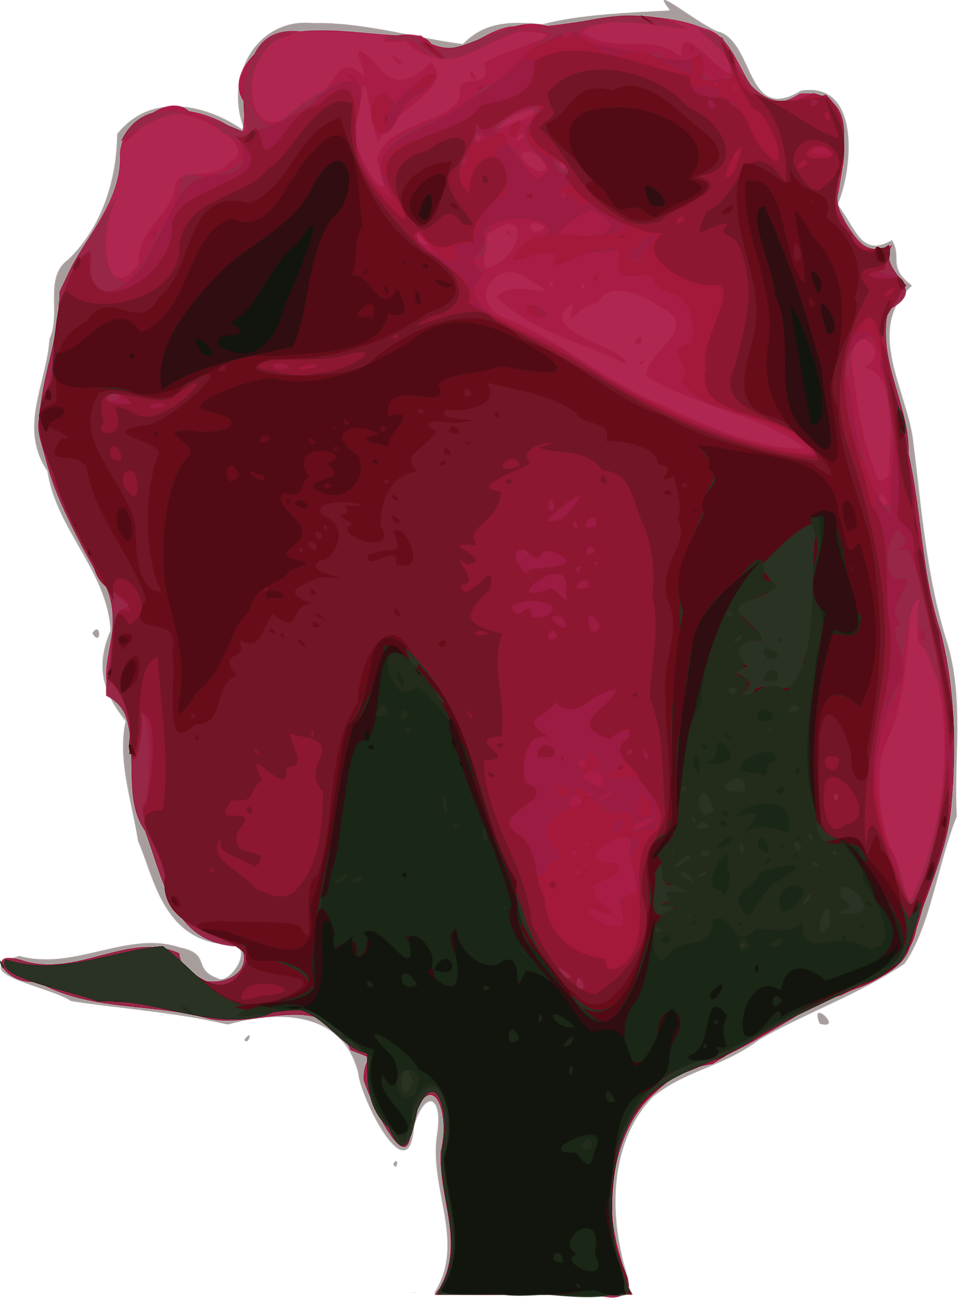 Purple Rose clipart romantic #15